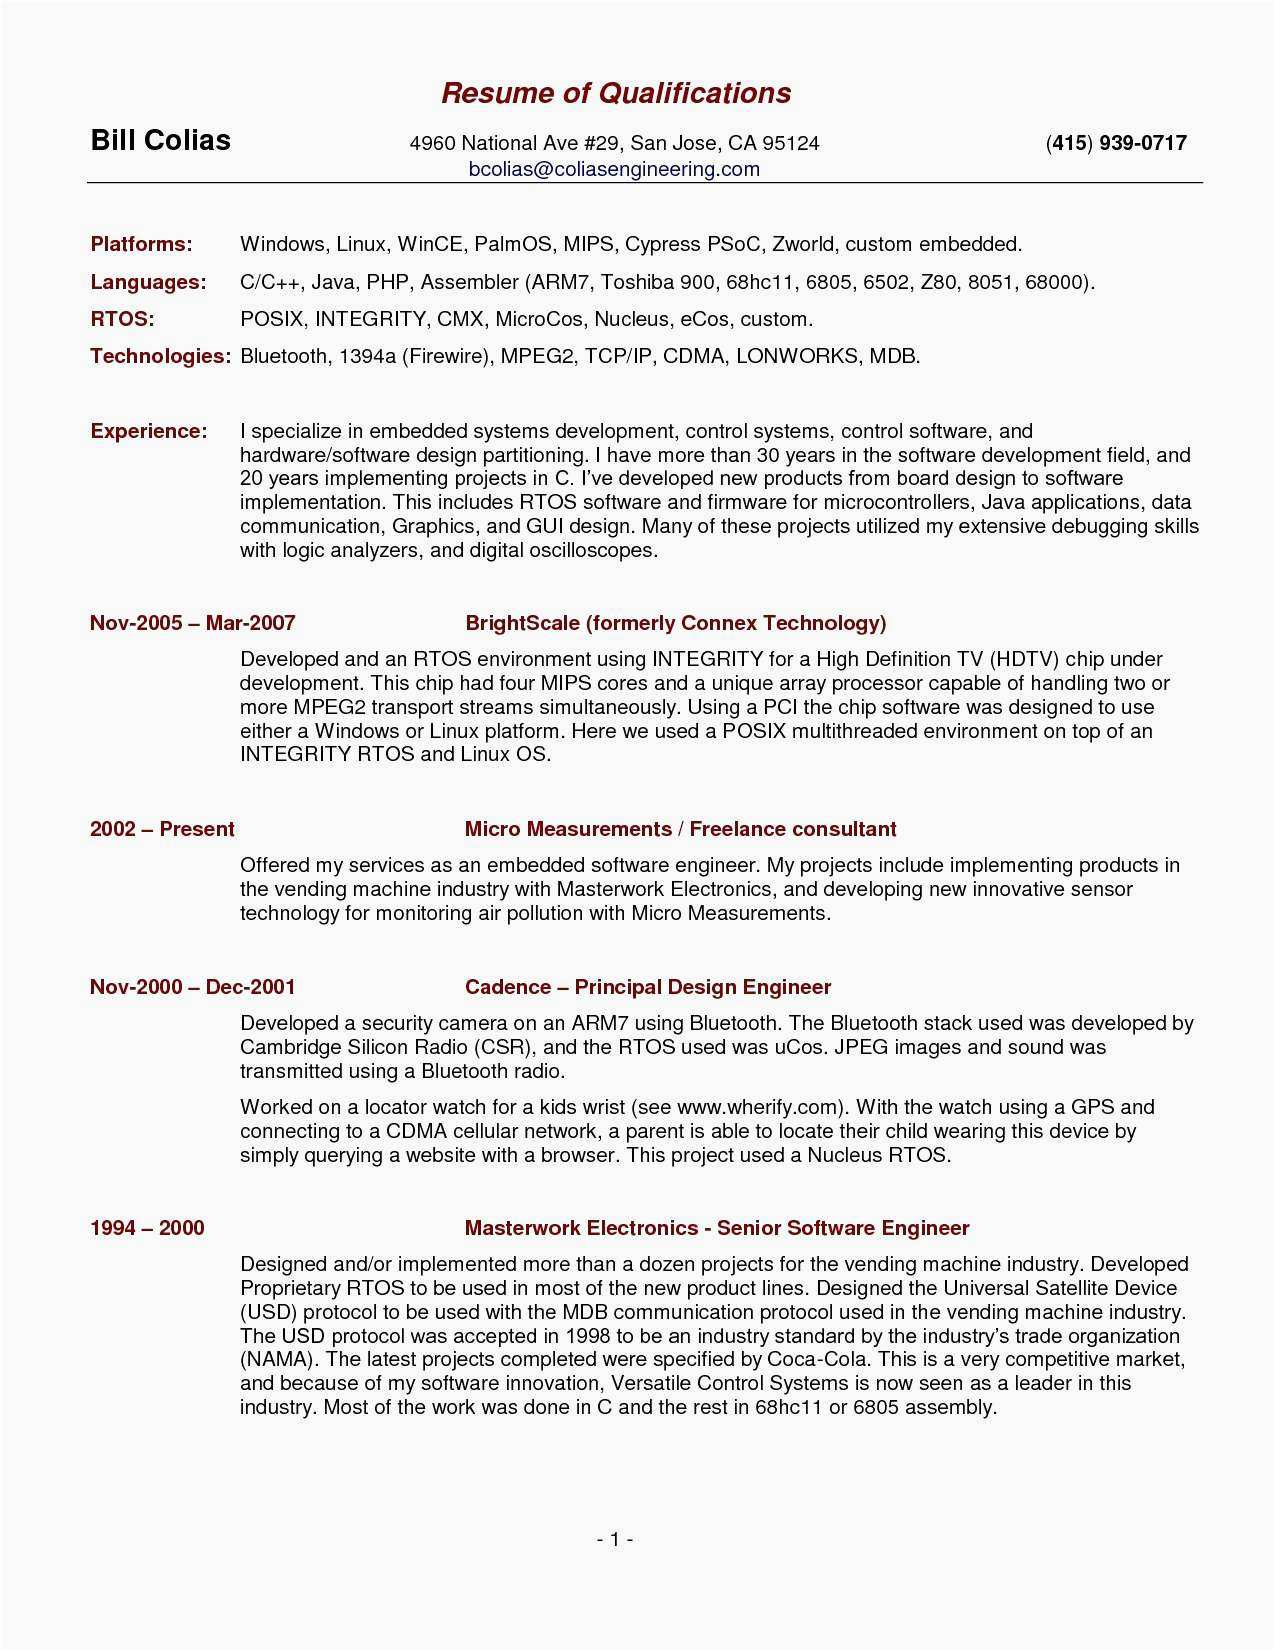 Service Advisor Resume Template - 22 Resume Professional Sample Download